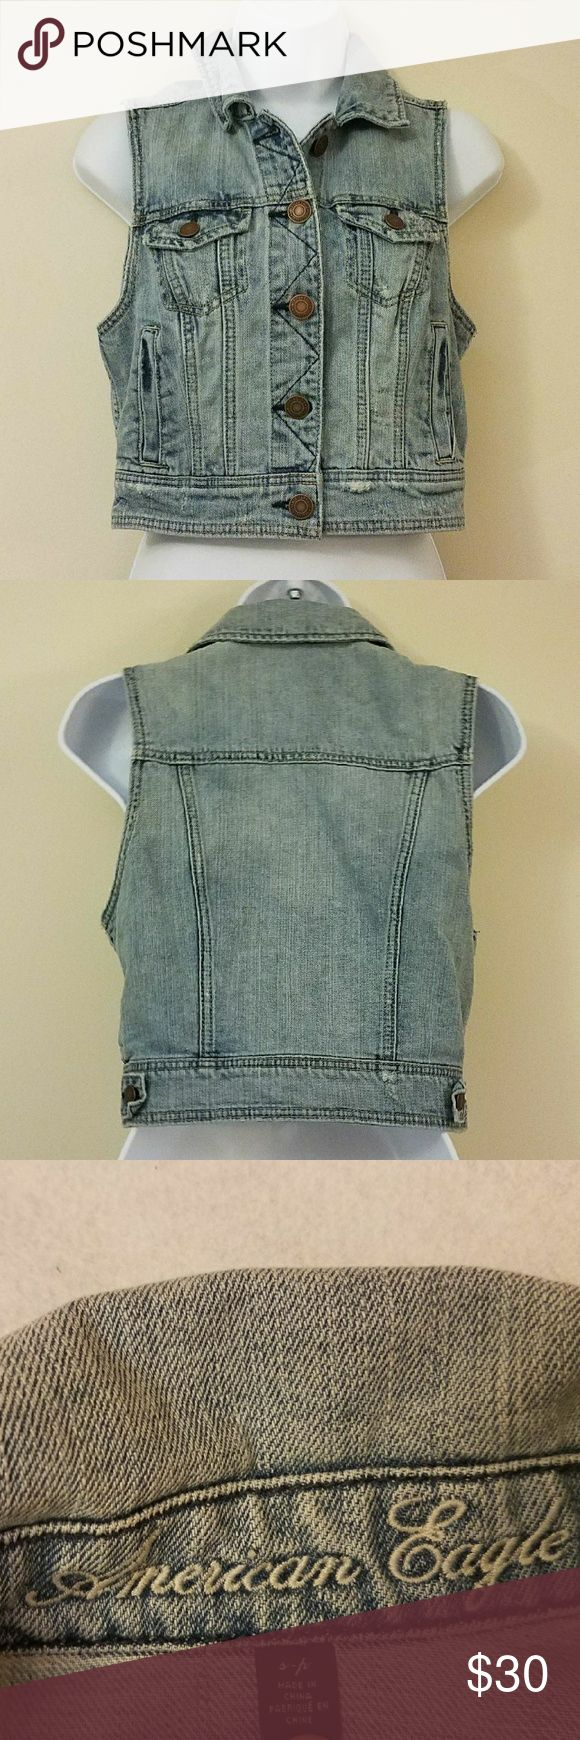 "American Eagle Distressed Vest Jacket American Eagle Distressed Light Wash Blue Jean Button Down Vest Jacket.? Size Small.? Gently used.? No flaws.? Please see photos for specifics.  Armpit to Armpit:? 16"" Length: 17""  Thank you for your business. American Eagle Outfitters Jackets & Coats Vests"